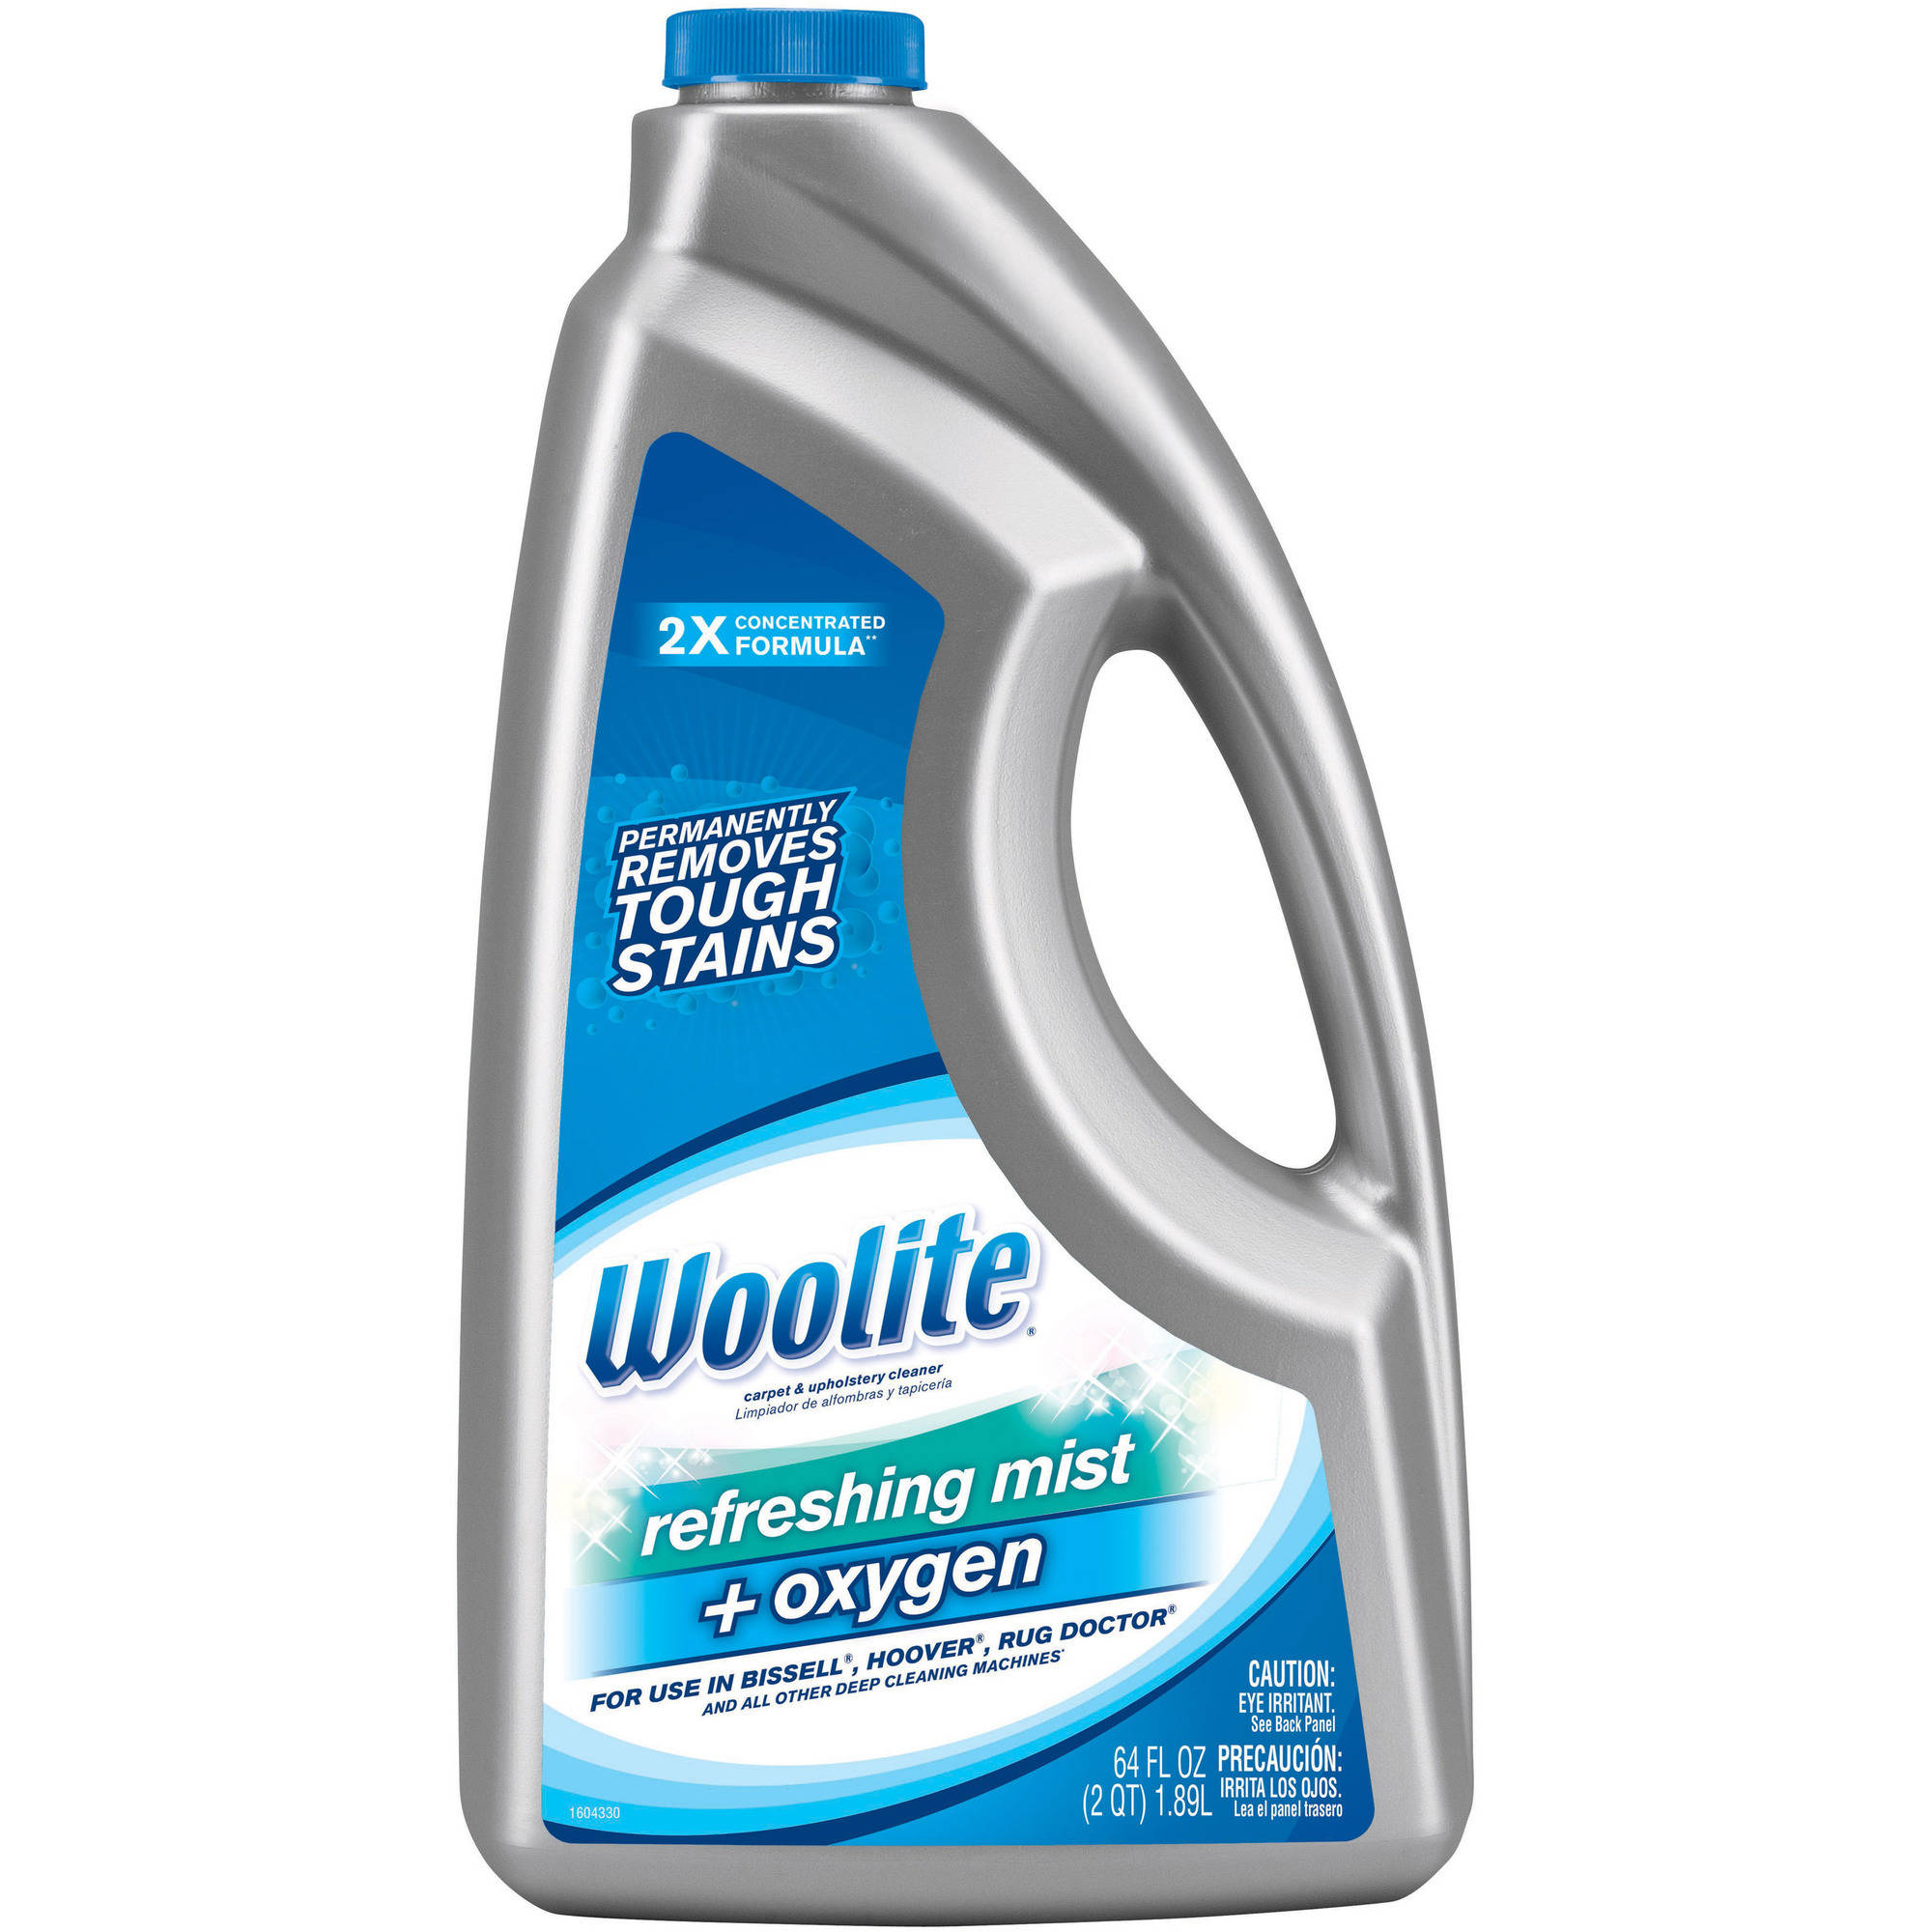 Woolite Allergen Carpet And Upholstery Cleaner 74 Oz